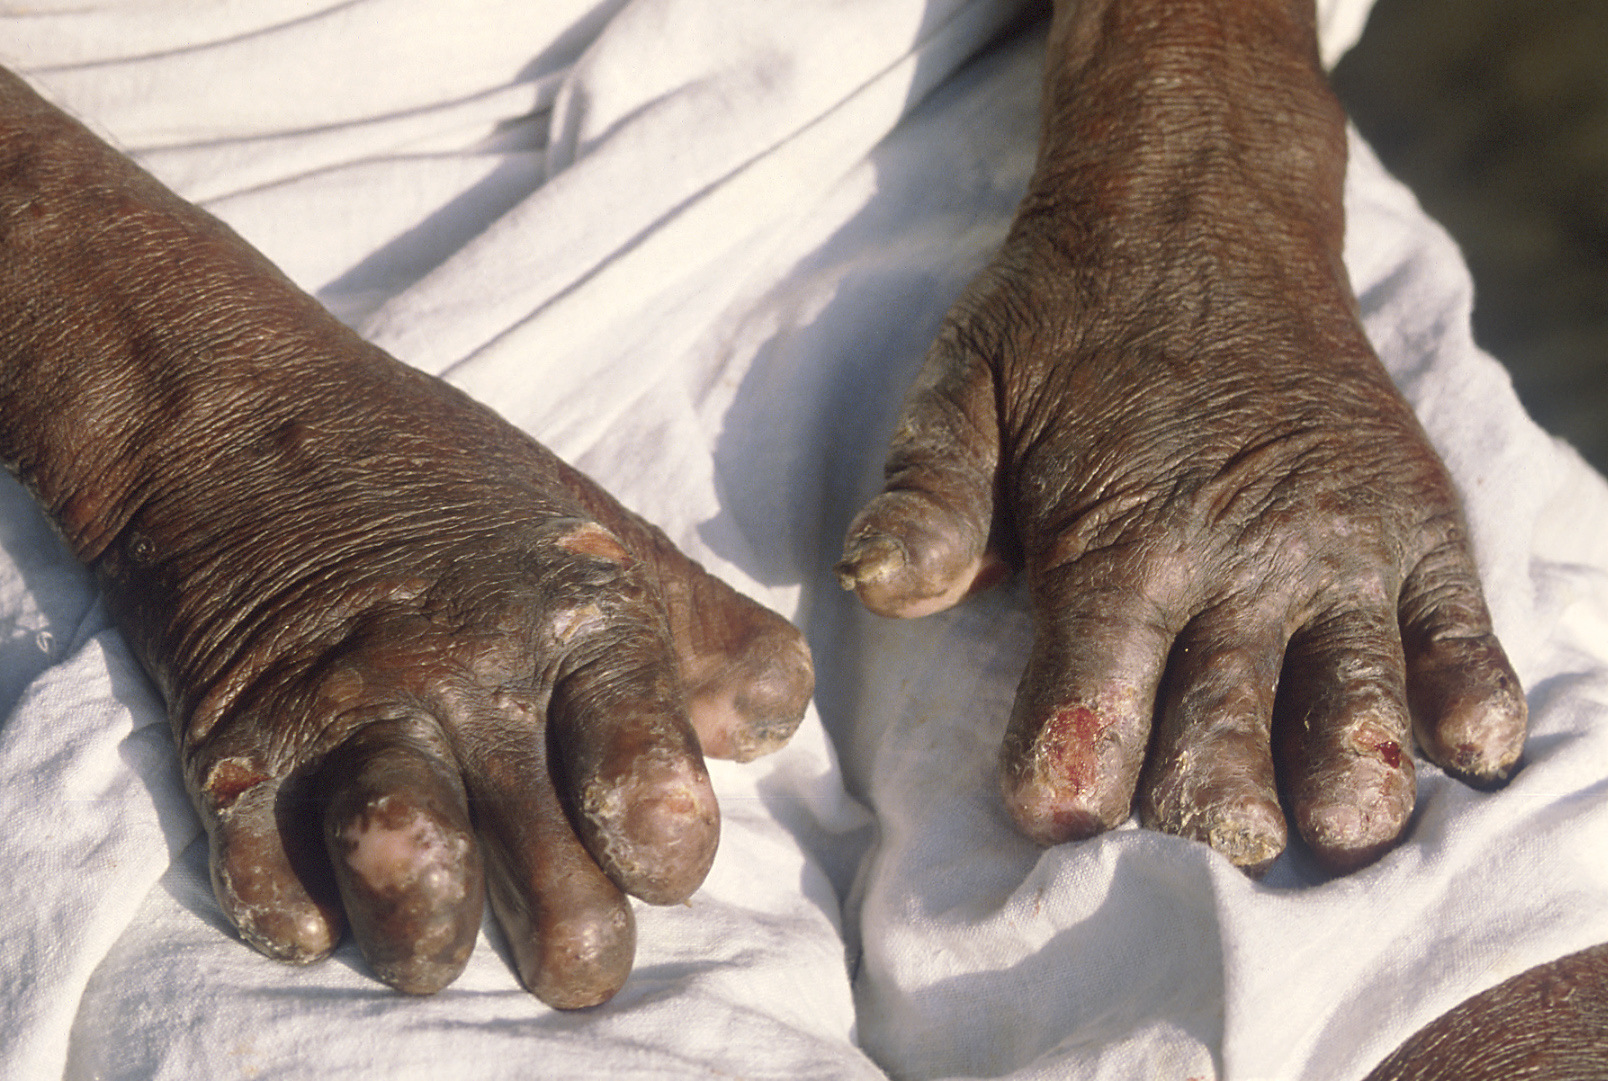 Leprosy_deformities_hands.jpg